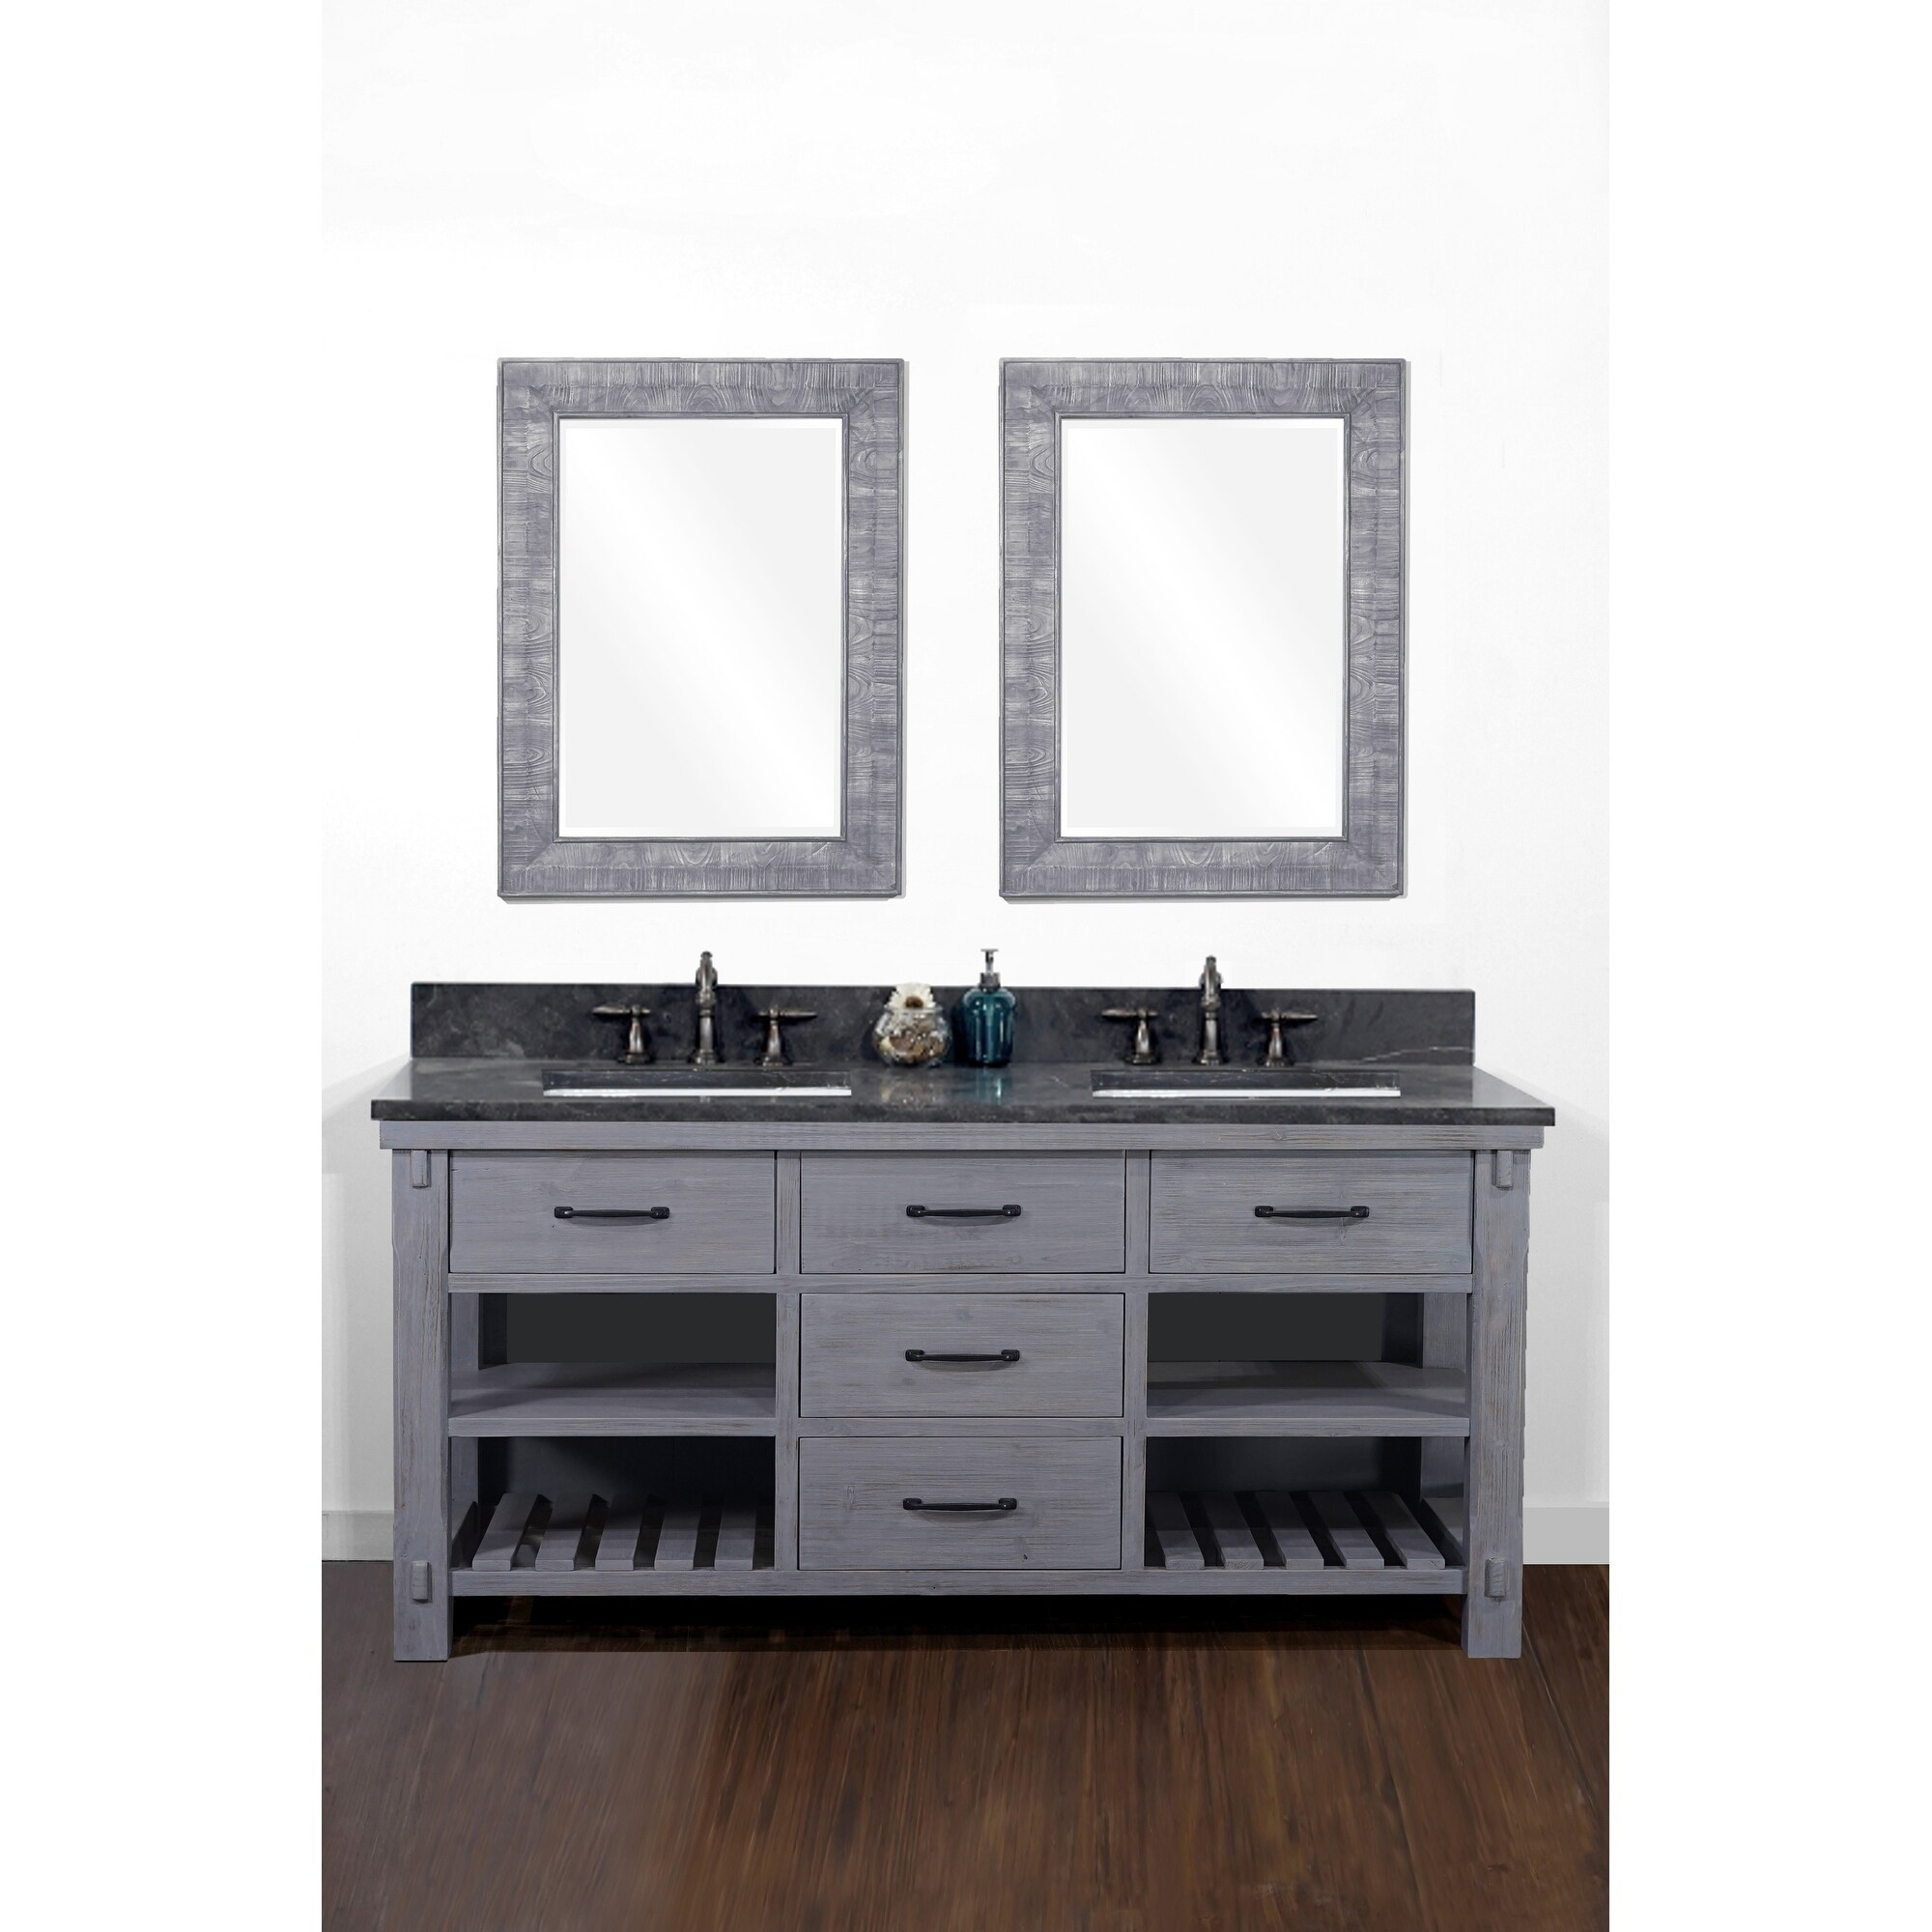 Shop 60 Rustic Solid Fir Double Sink Vanity In Blue Grey Driftwood Finish With Marble Top No Faucet Overstock 30510565 Rectangle Artic Pearl Marble